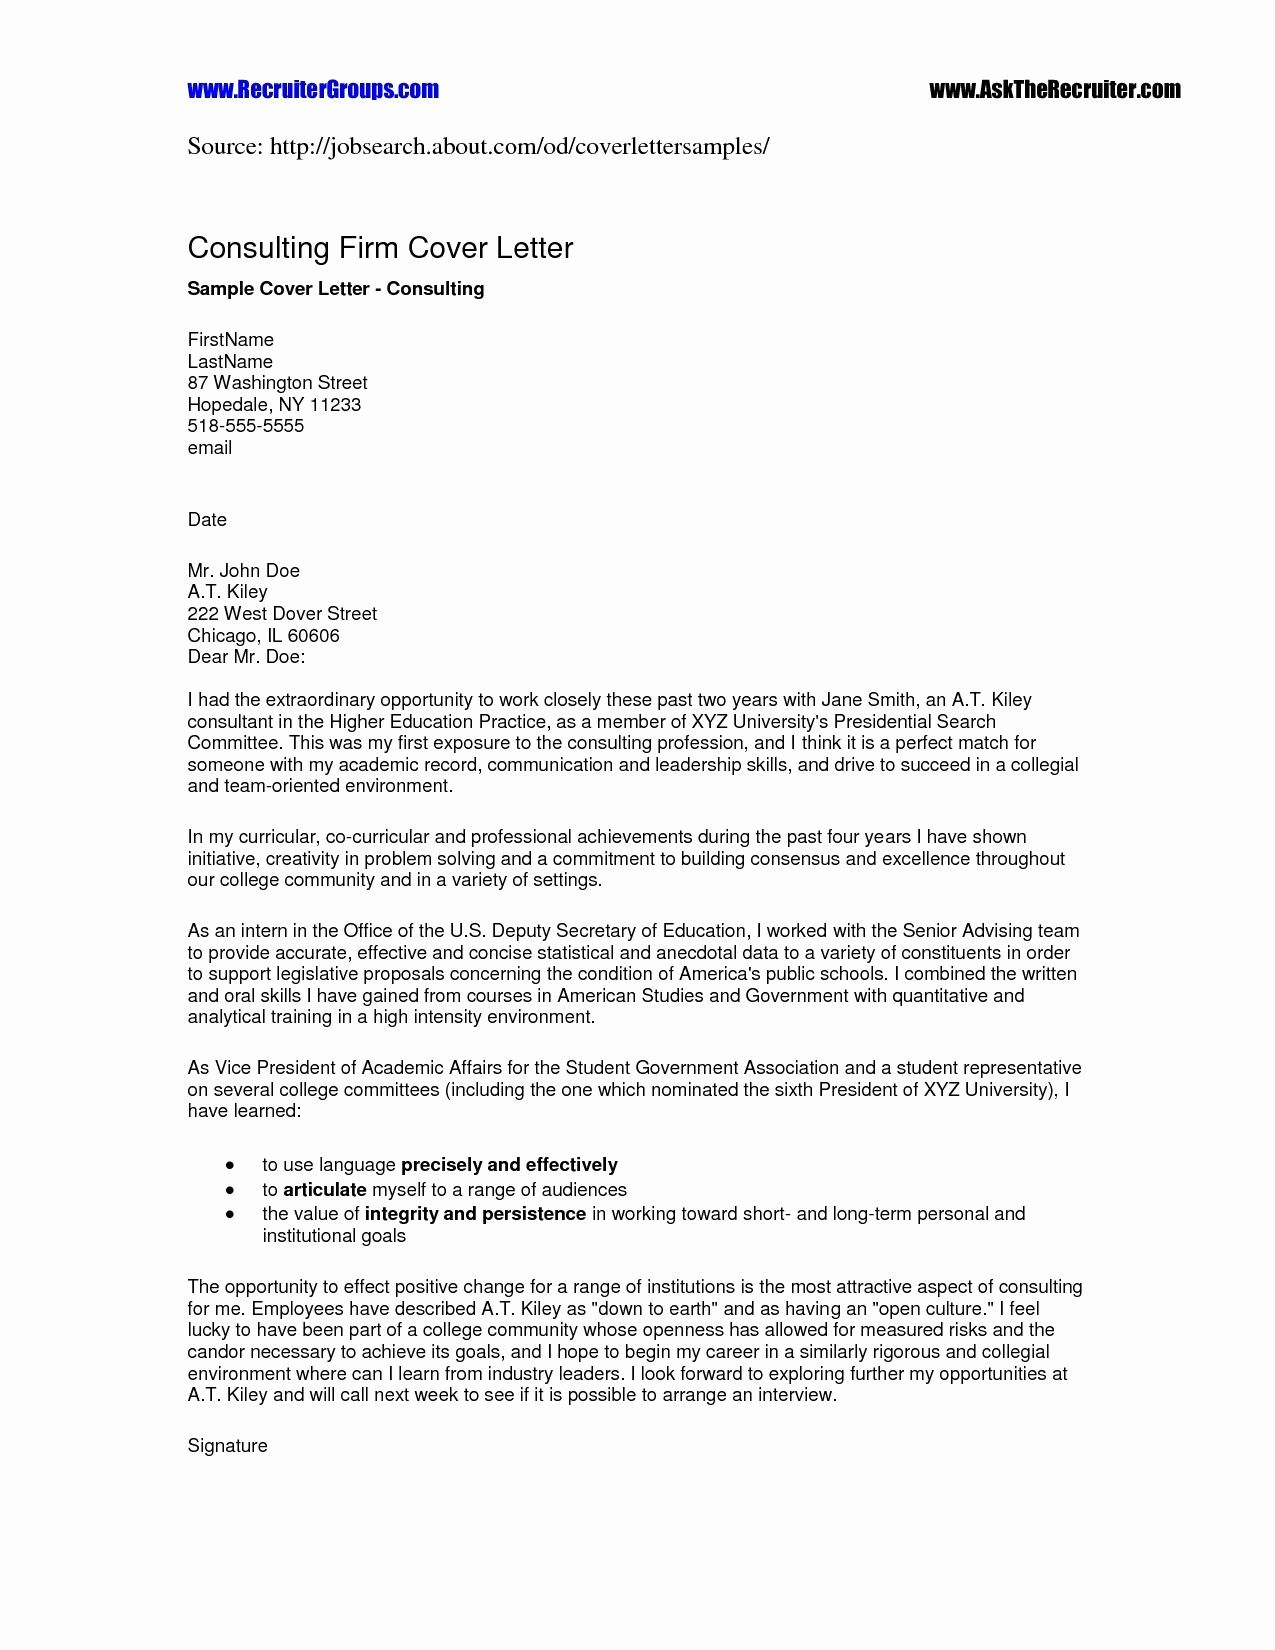 it u0026 39 s true  you should tailor your cover letters to the job